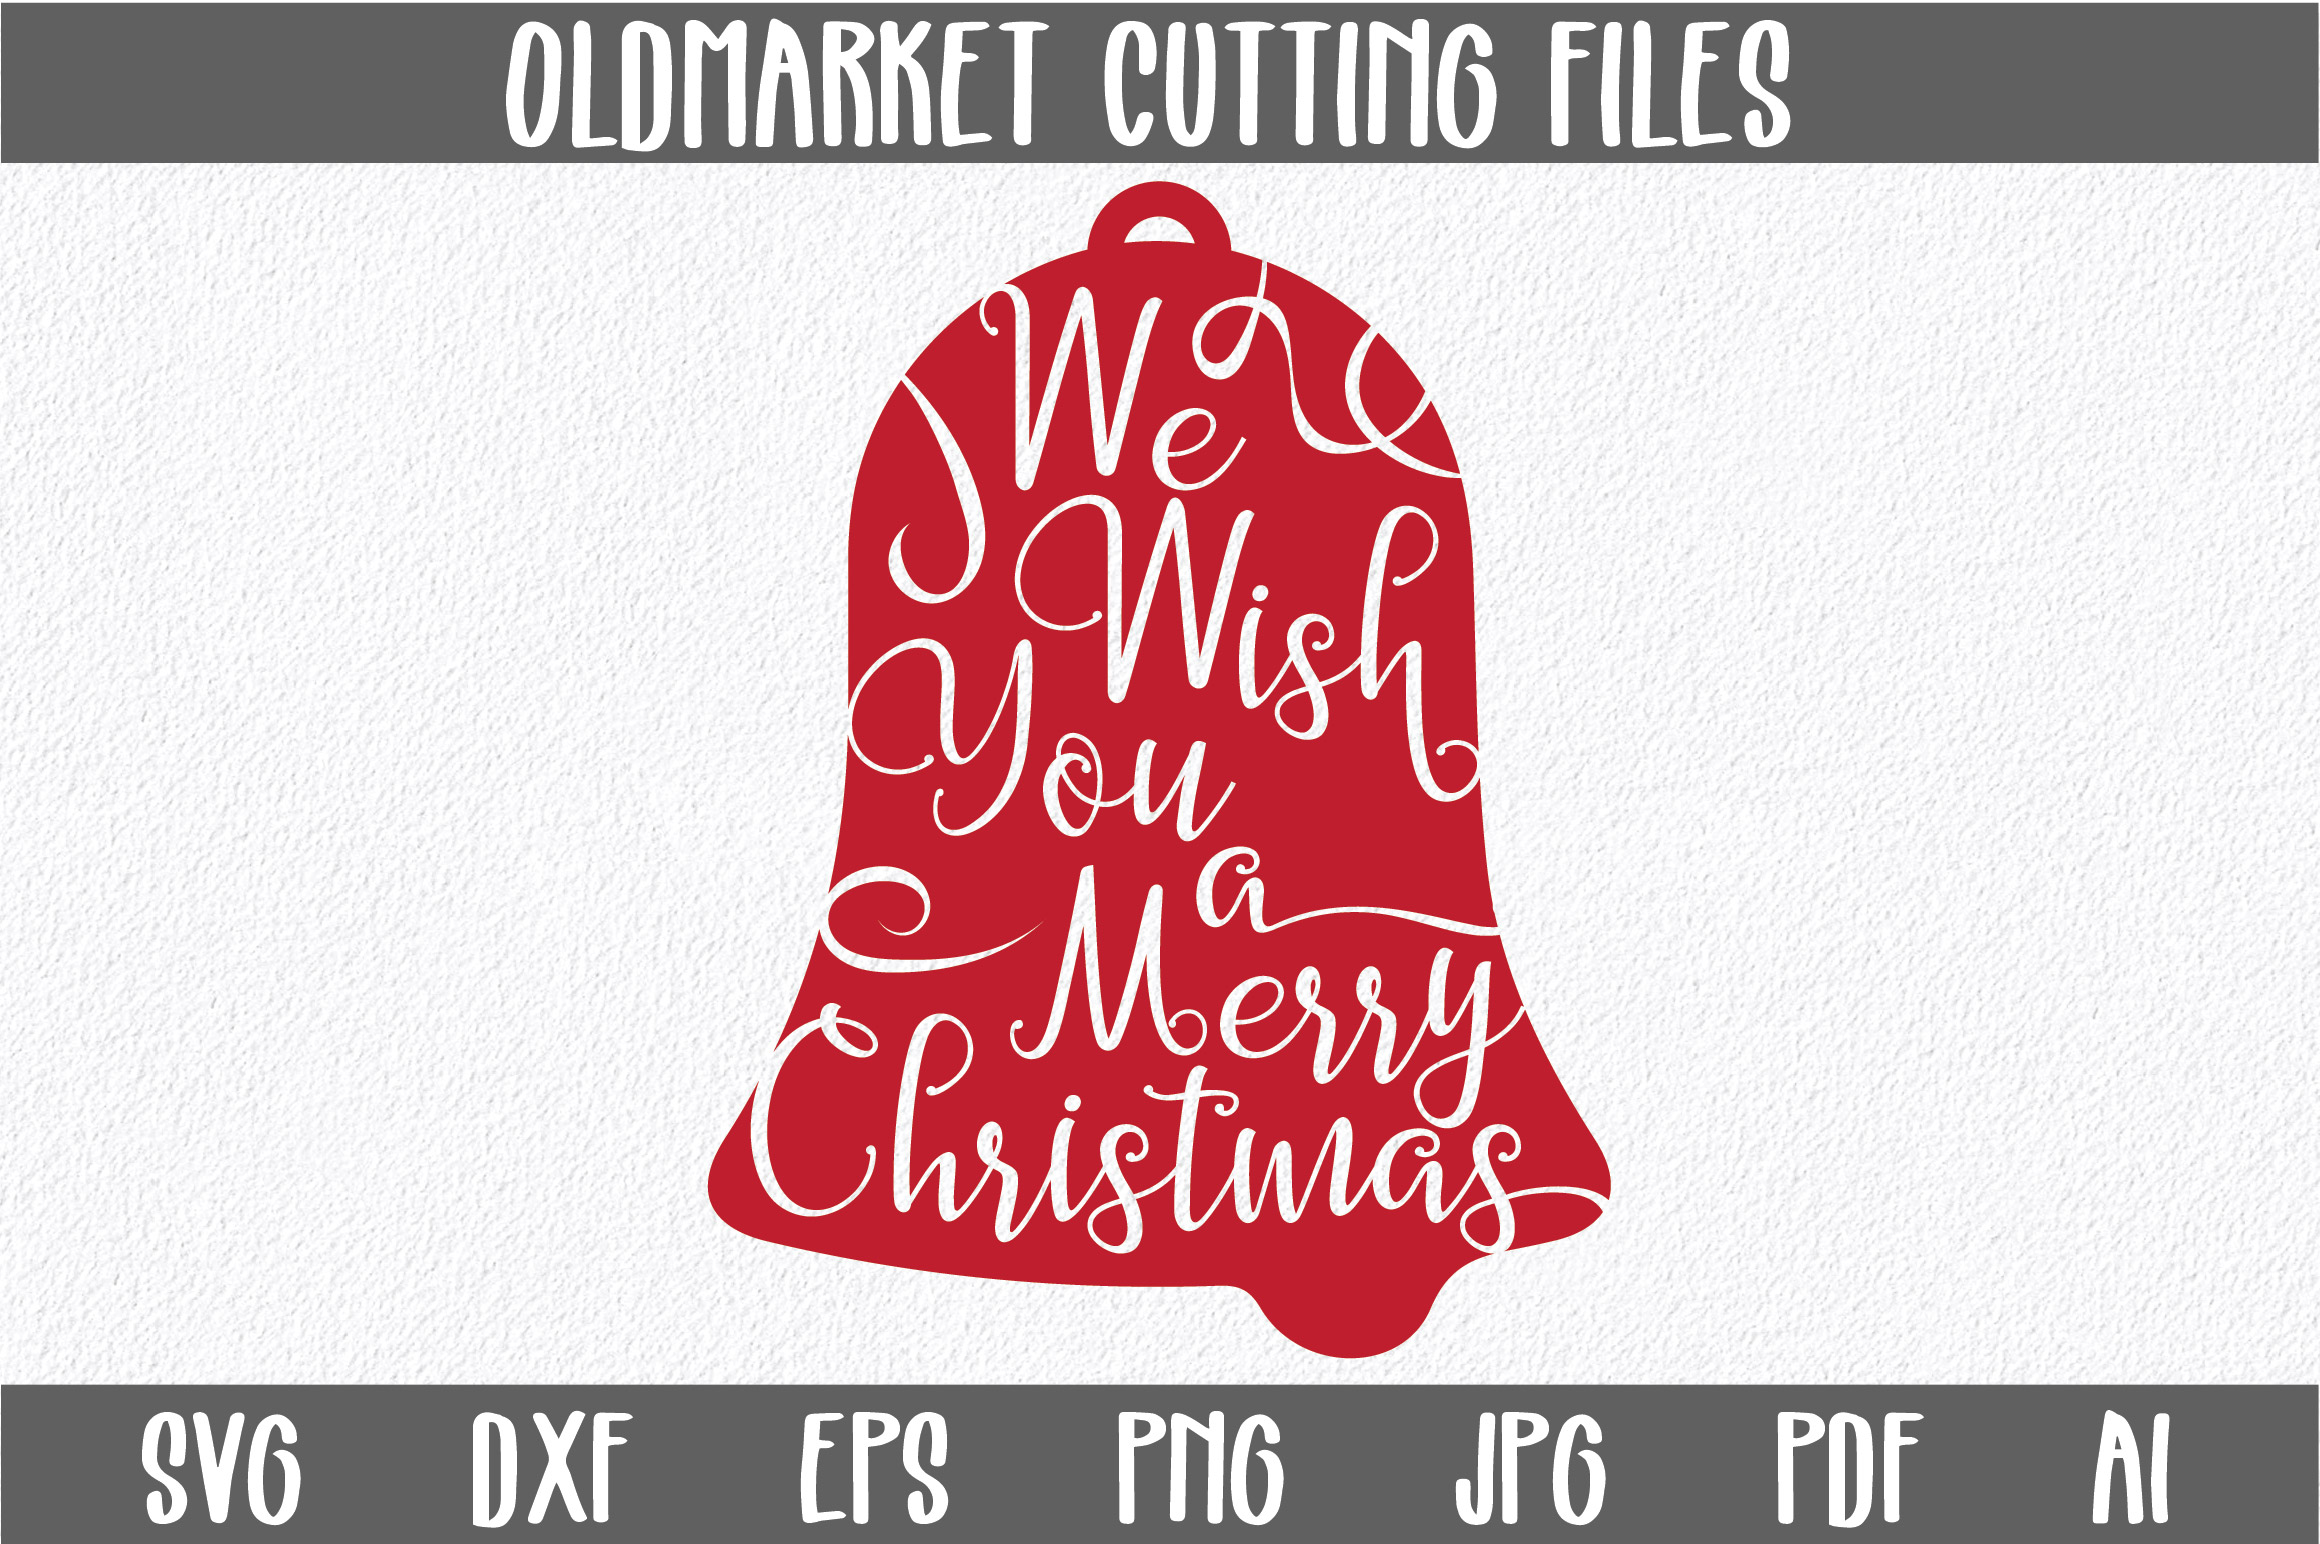 We Wish You A Merry Christmas Christmas Svg Cut File Graphic By Oldmarketdesigns Creative Fabrica